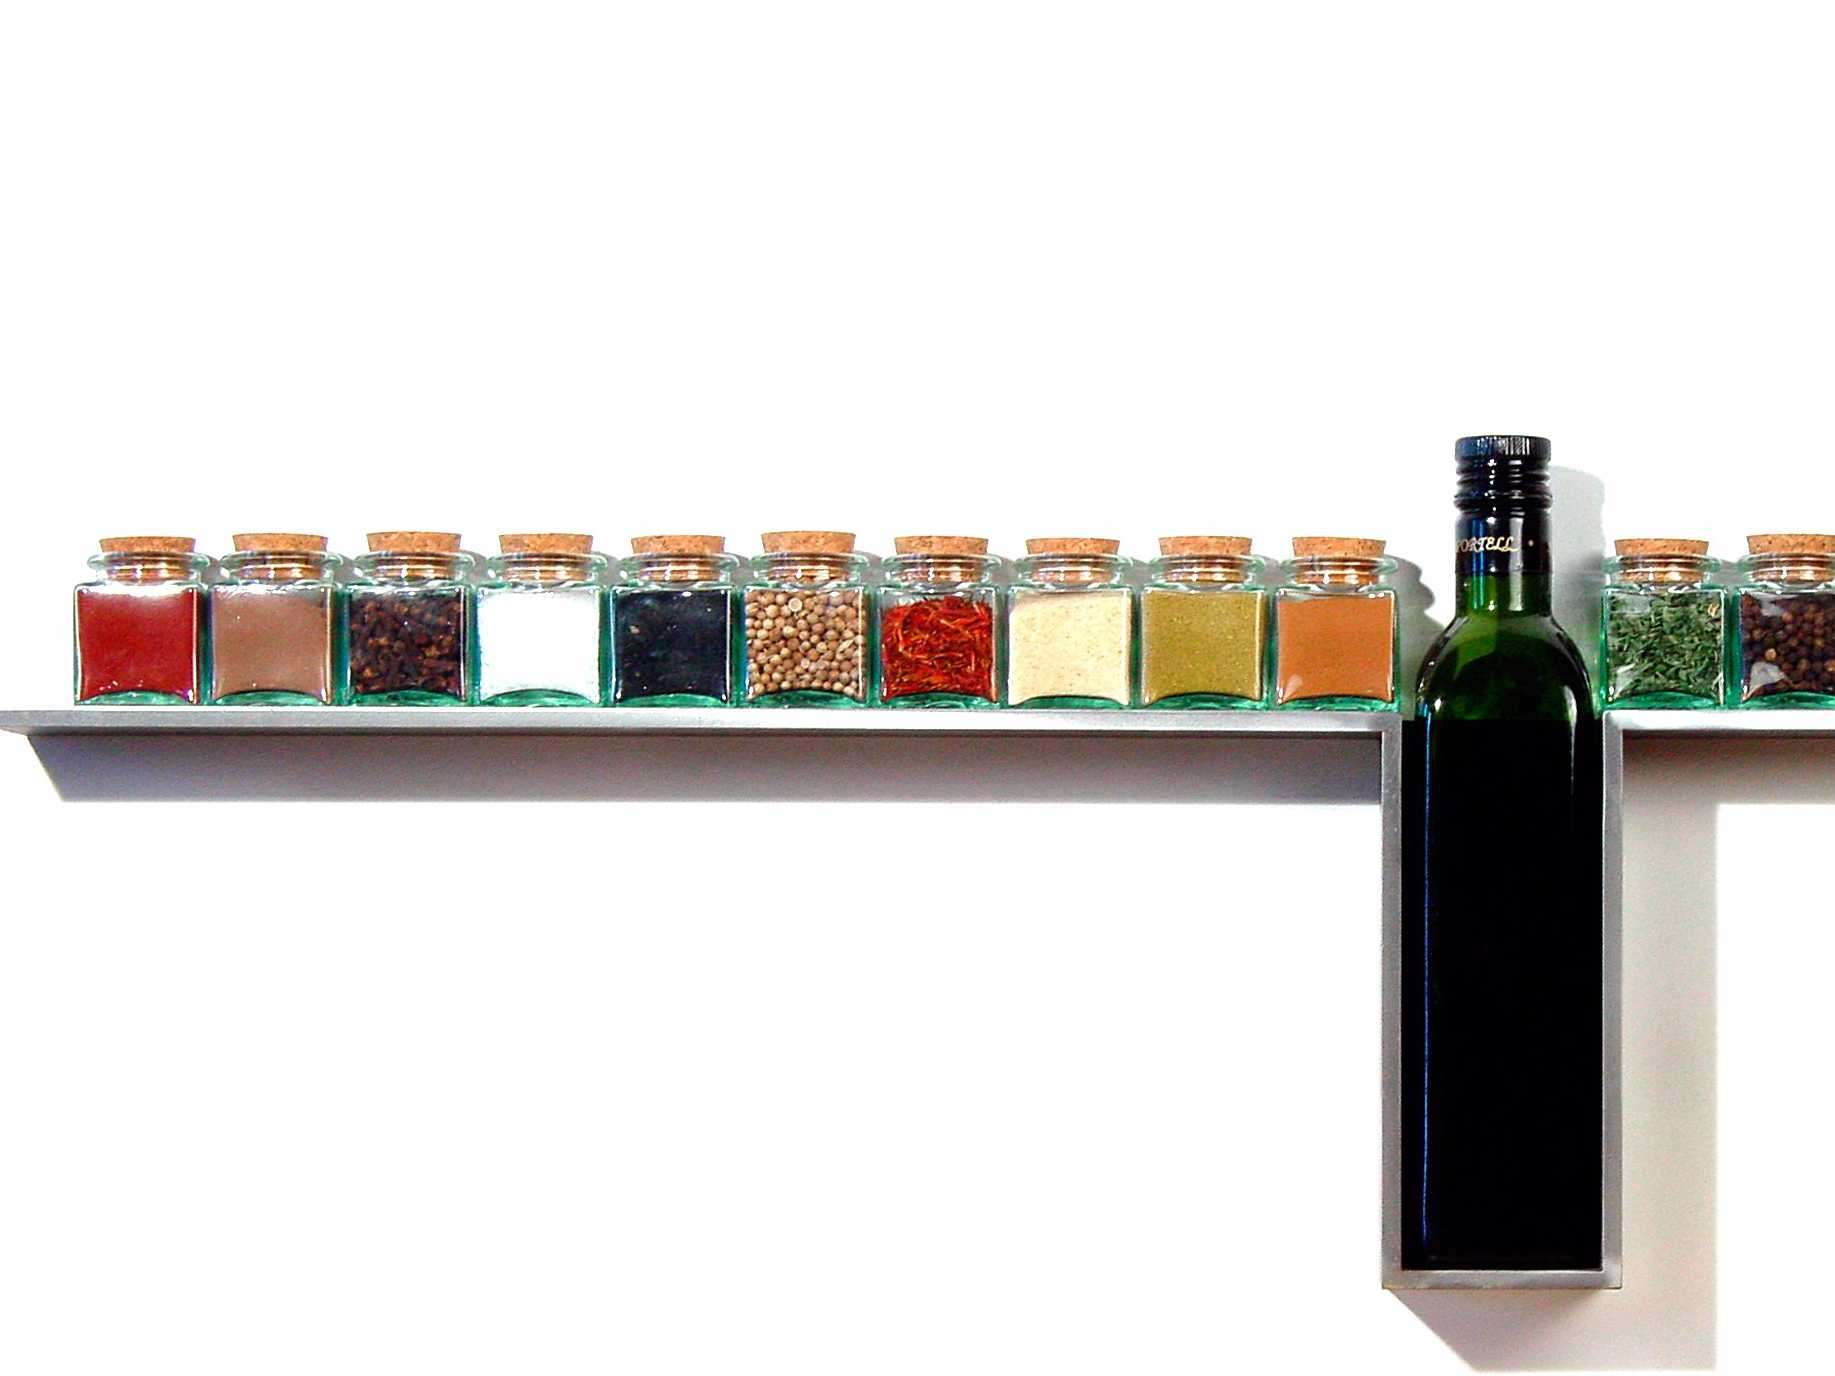 Design a spice rack for the blind business insider india for Architecture firms for internship in india